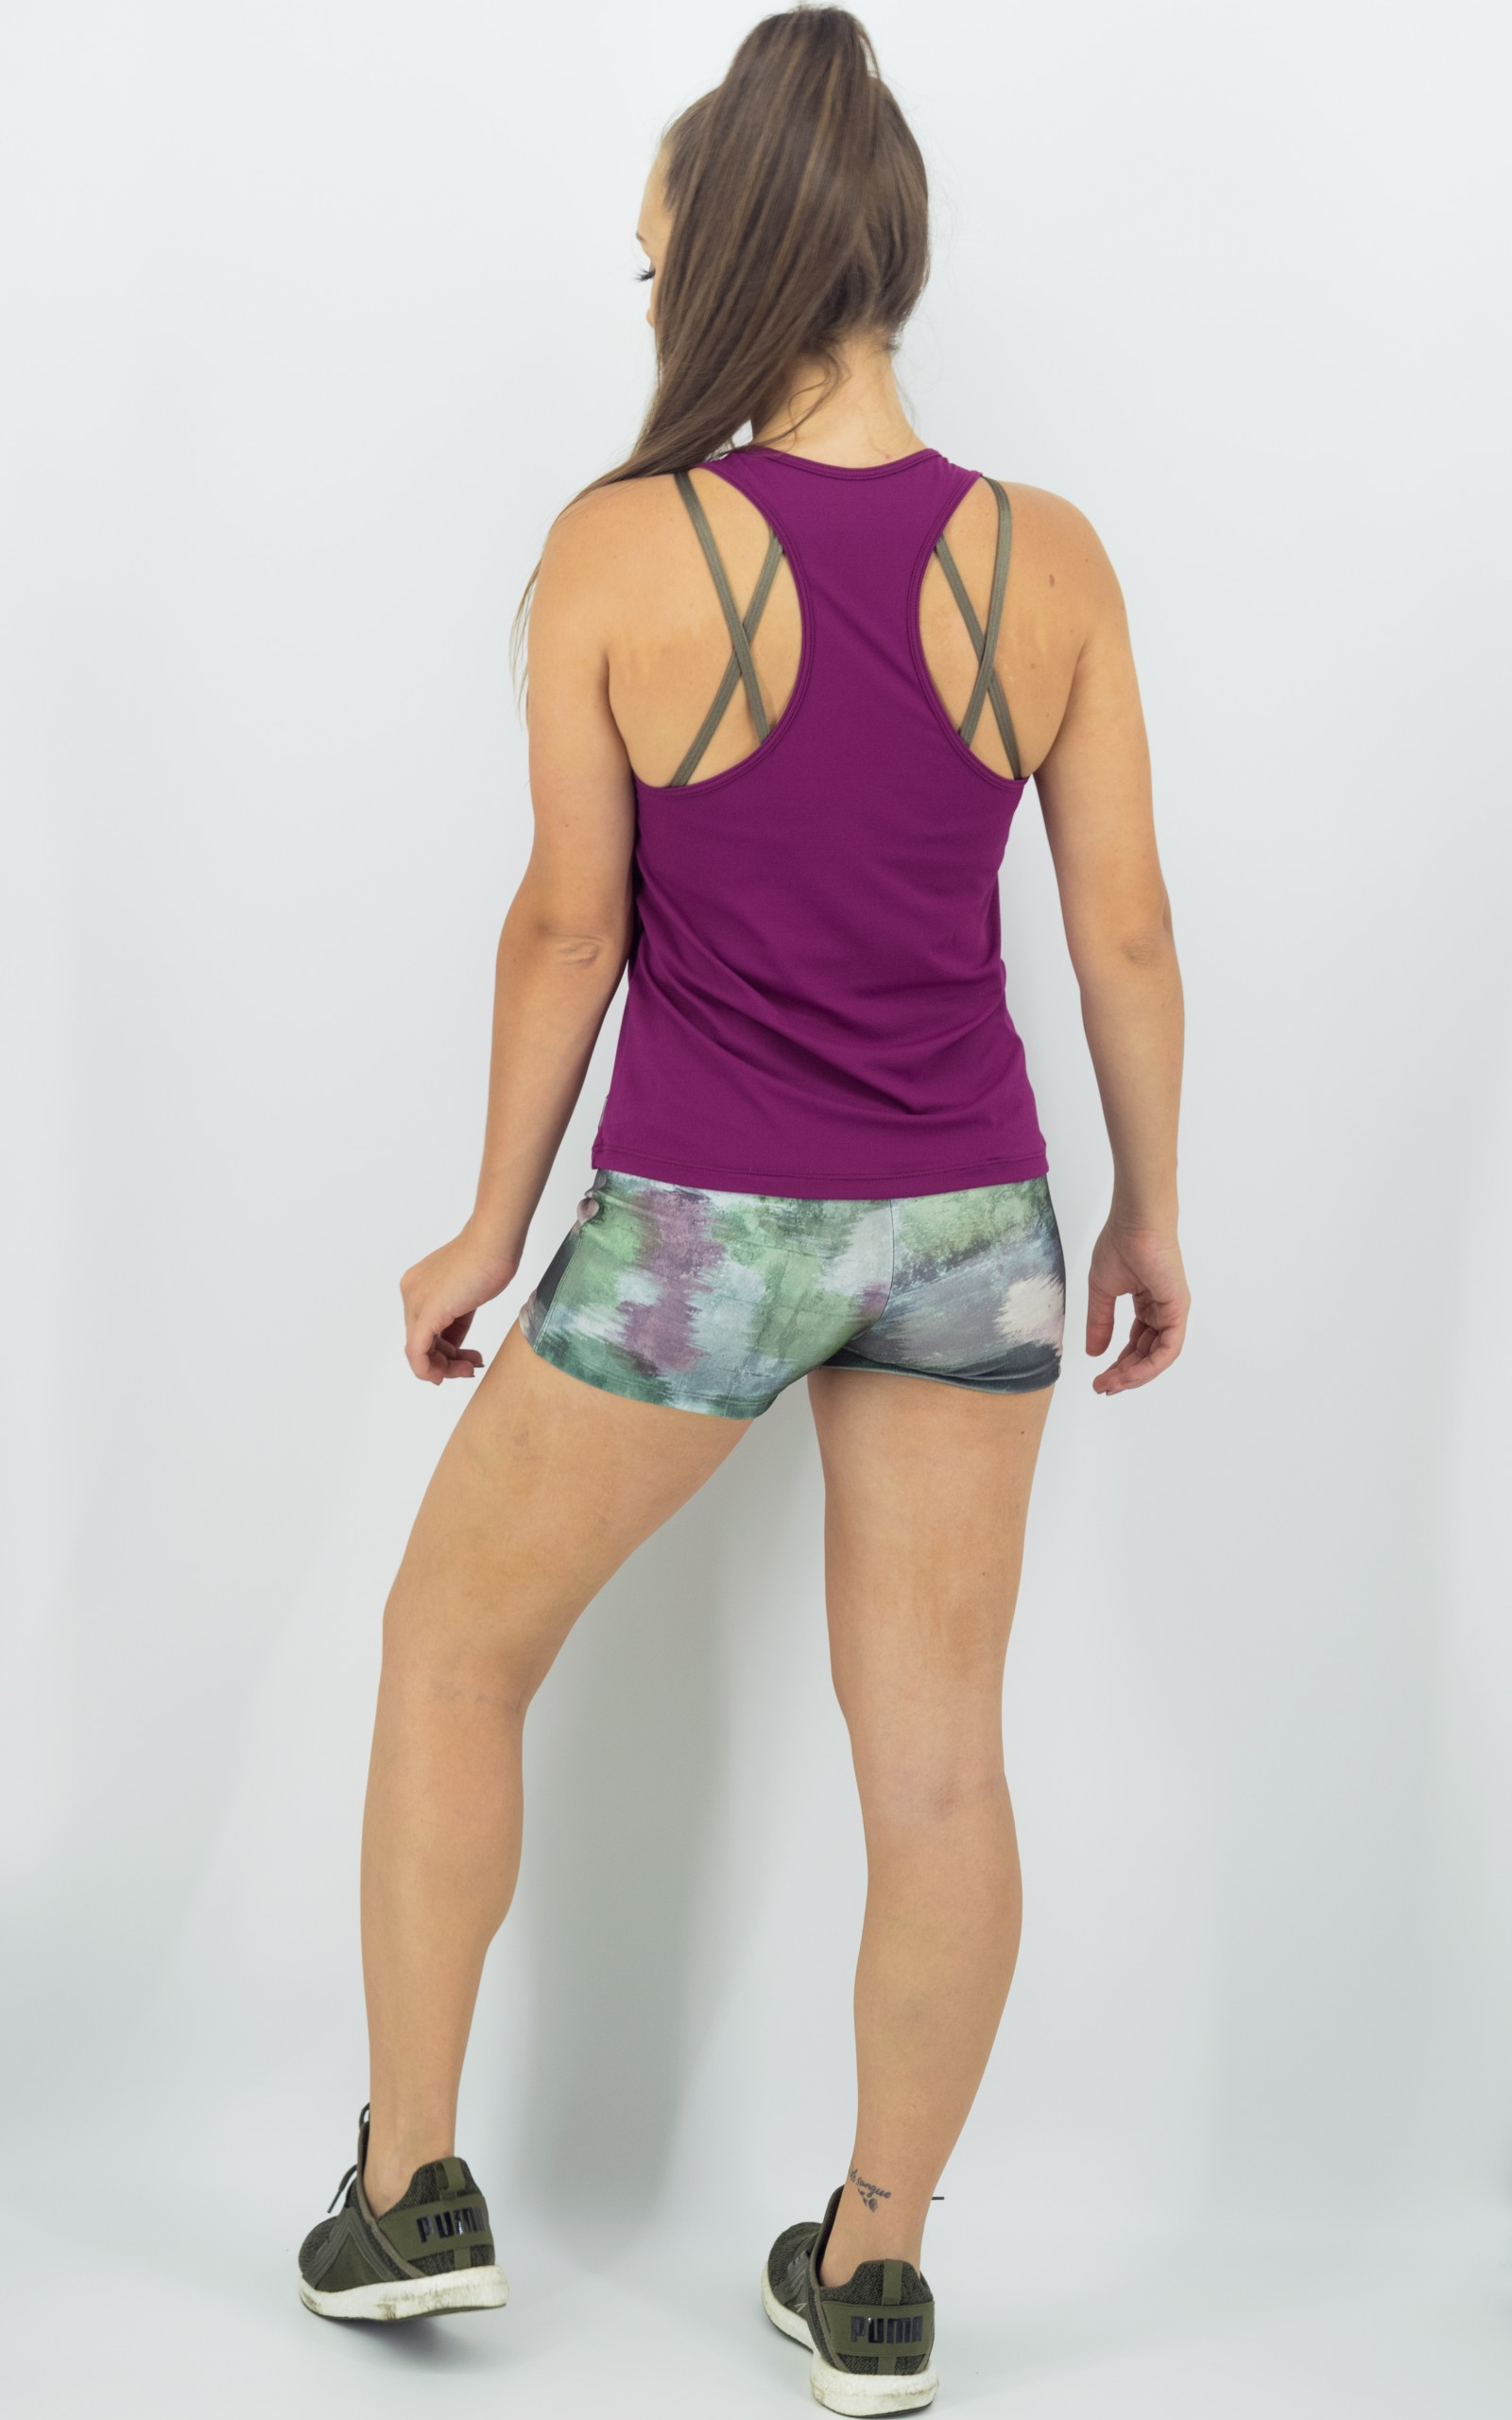 Shorts Confort Plus Estampado, Coleção Move Your Body - NKT Fitwear Moda Fitness